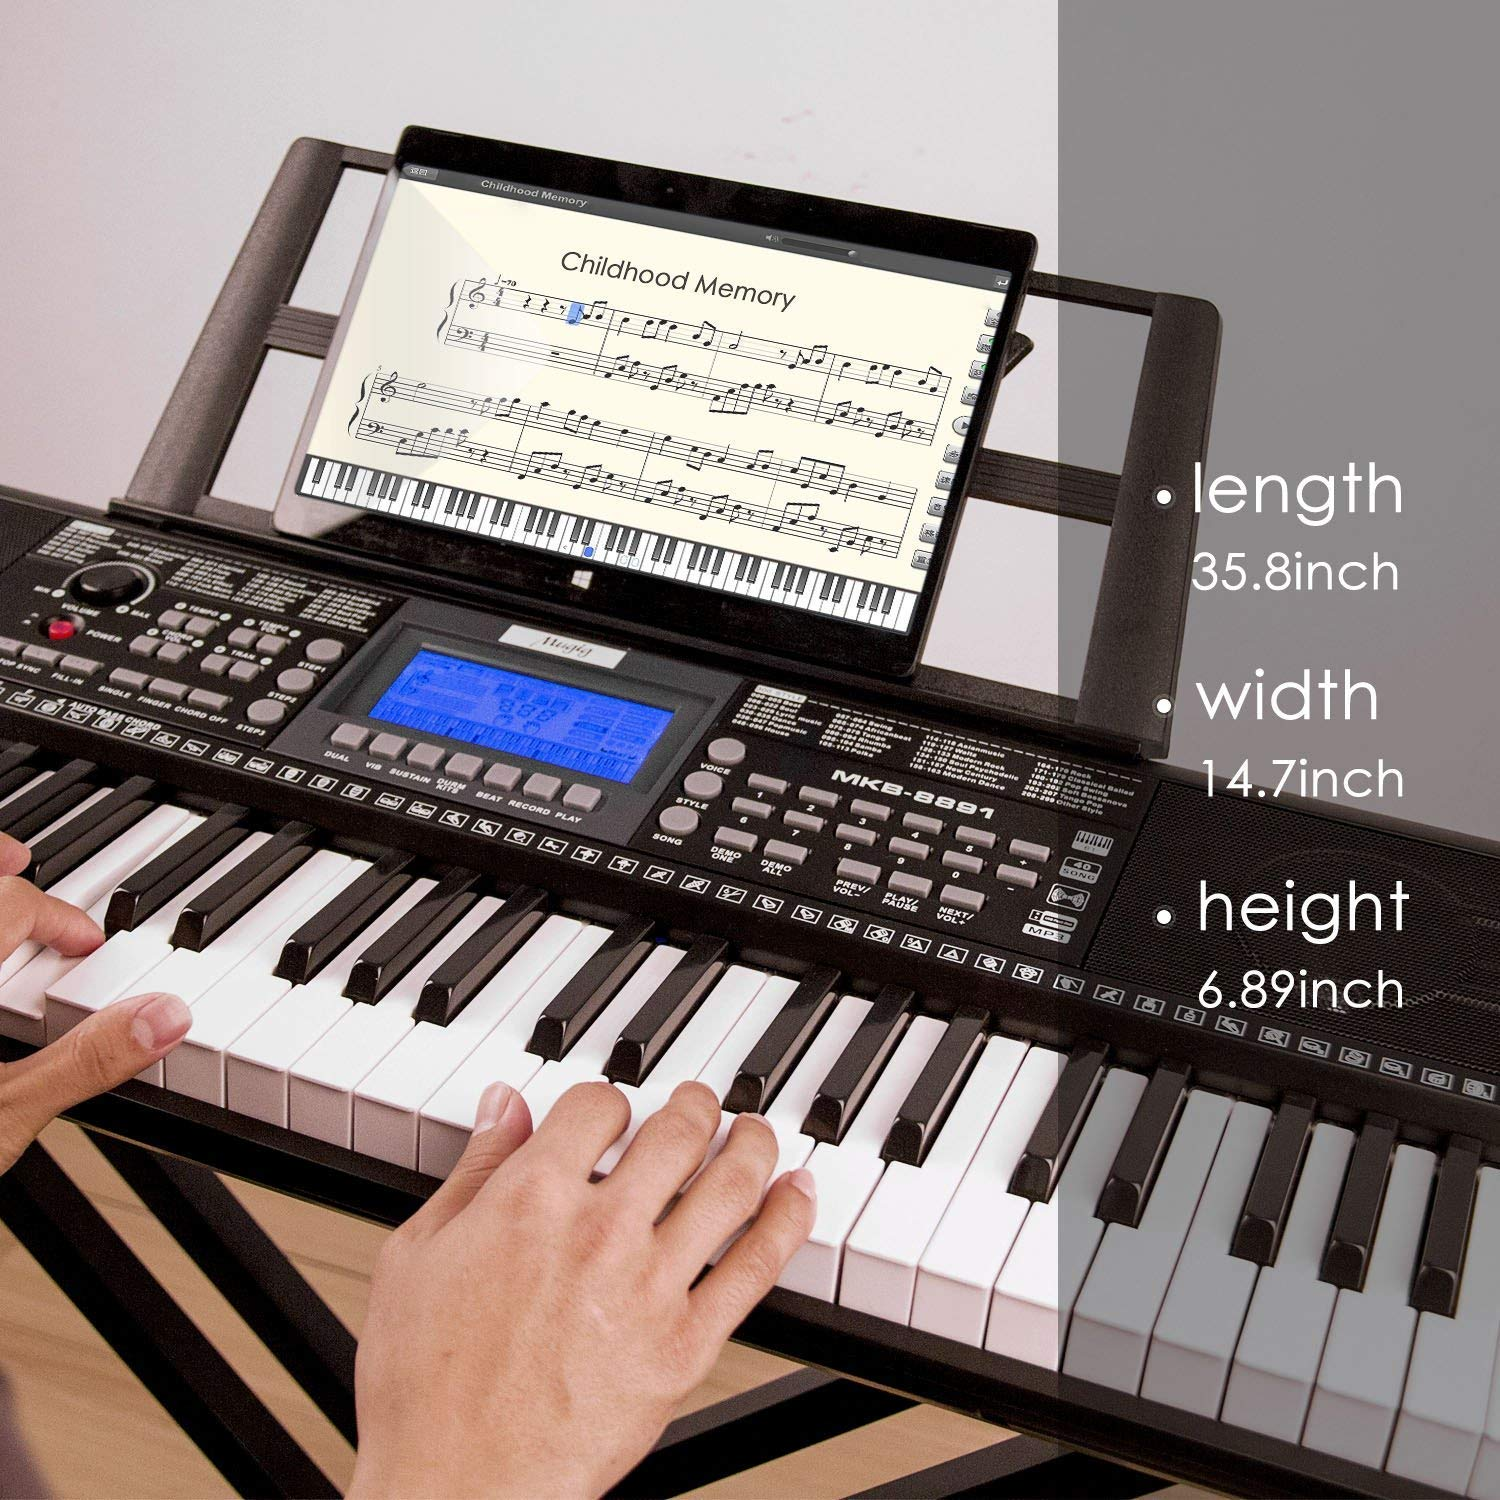 Keyboard Piano, Mugig 61-key Portable Electric Keyboard Piano with Sheet Music Stand, 3 Intelligent Education Teaching Mode, Dual Power Supply&USB Port (Kids & Adults) by Mugig (Image #2)